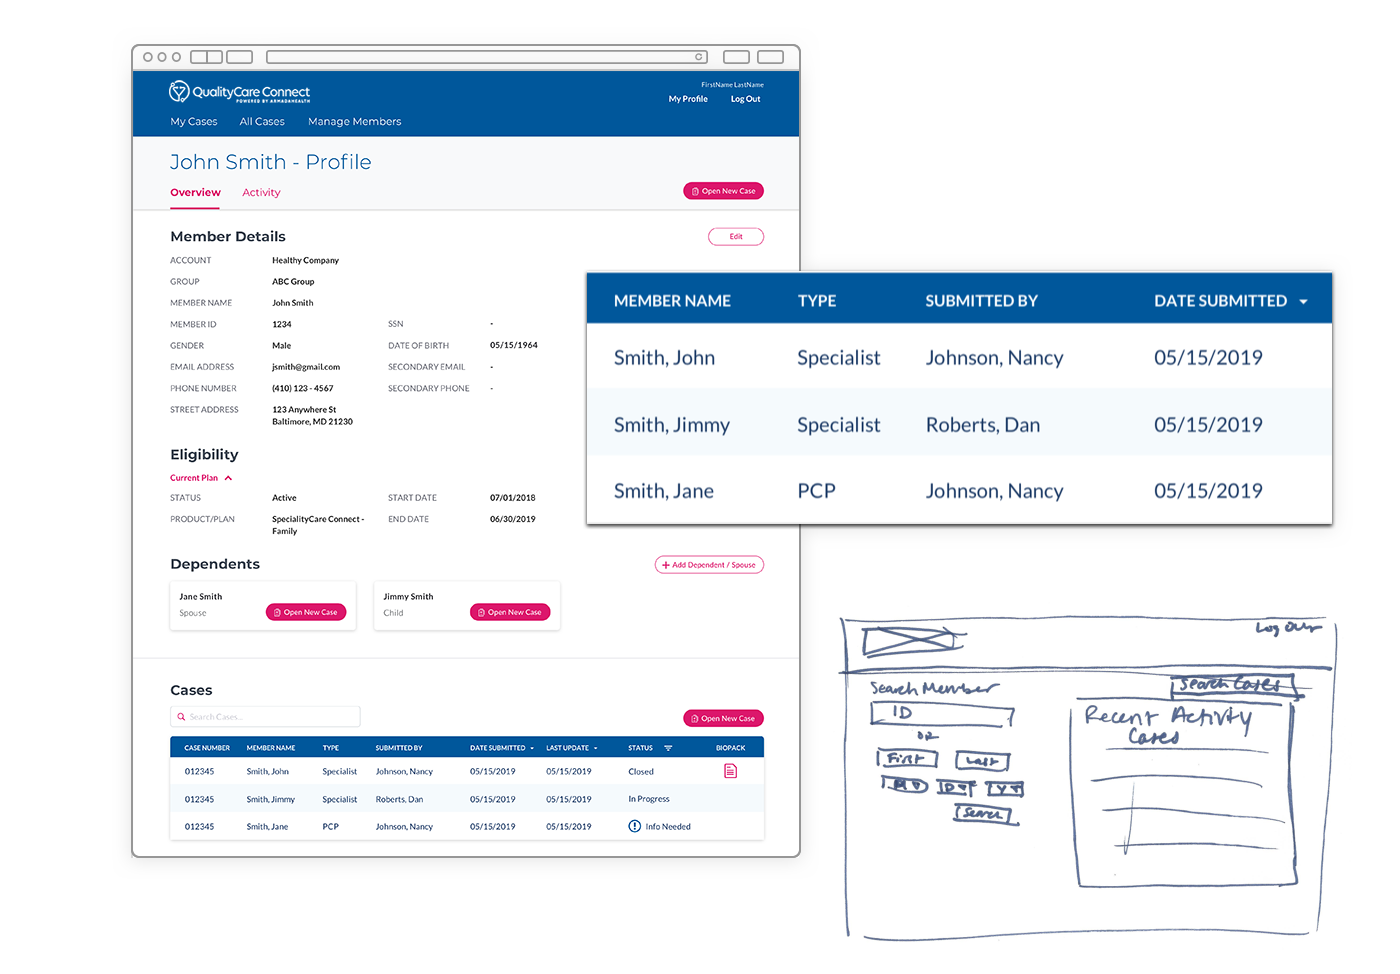 A web page showing a member profile, a chart showing case search results, and a sketch of what the search page would look like